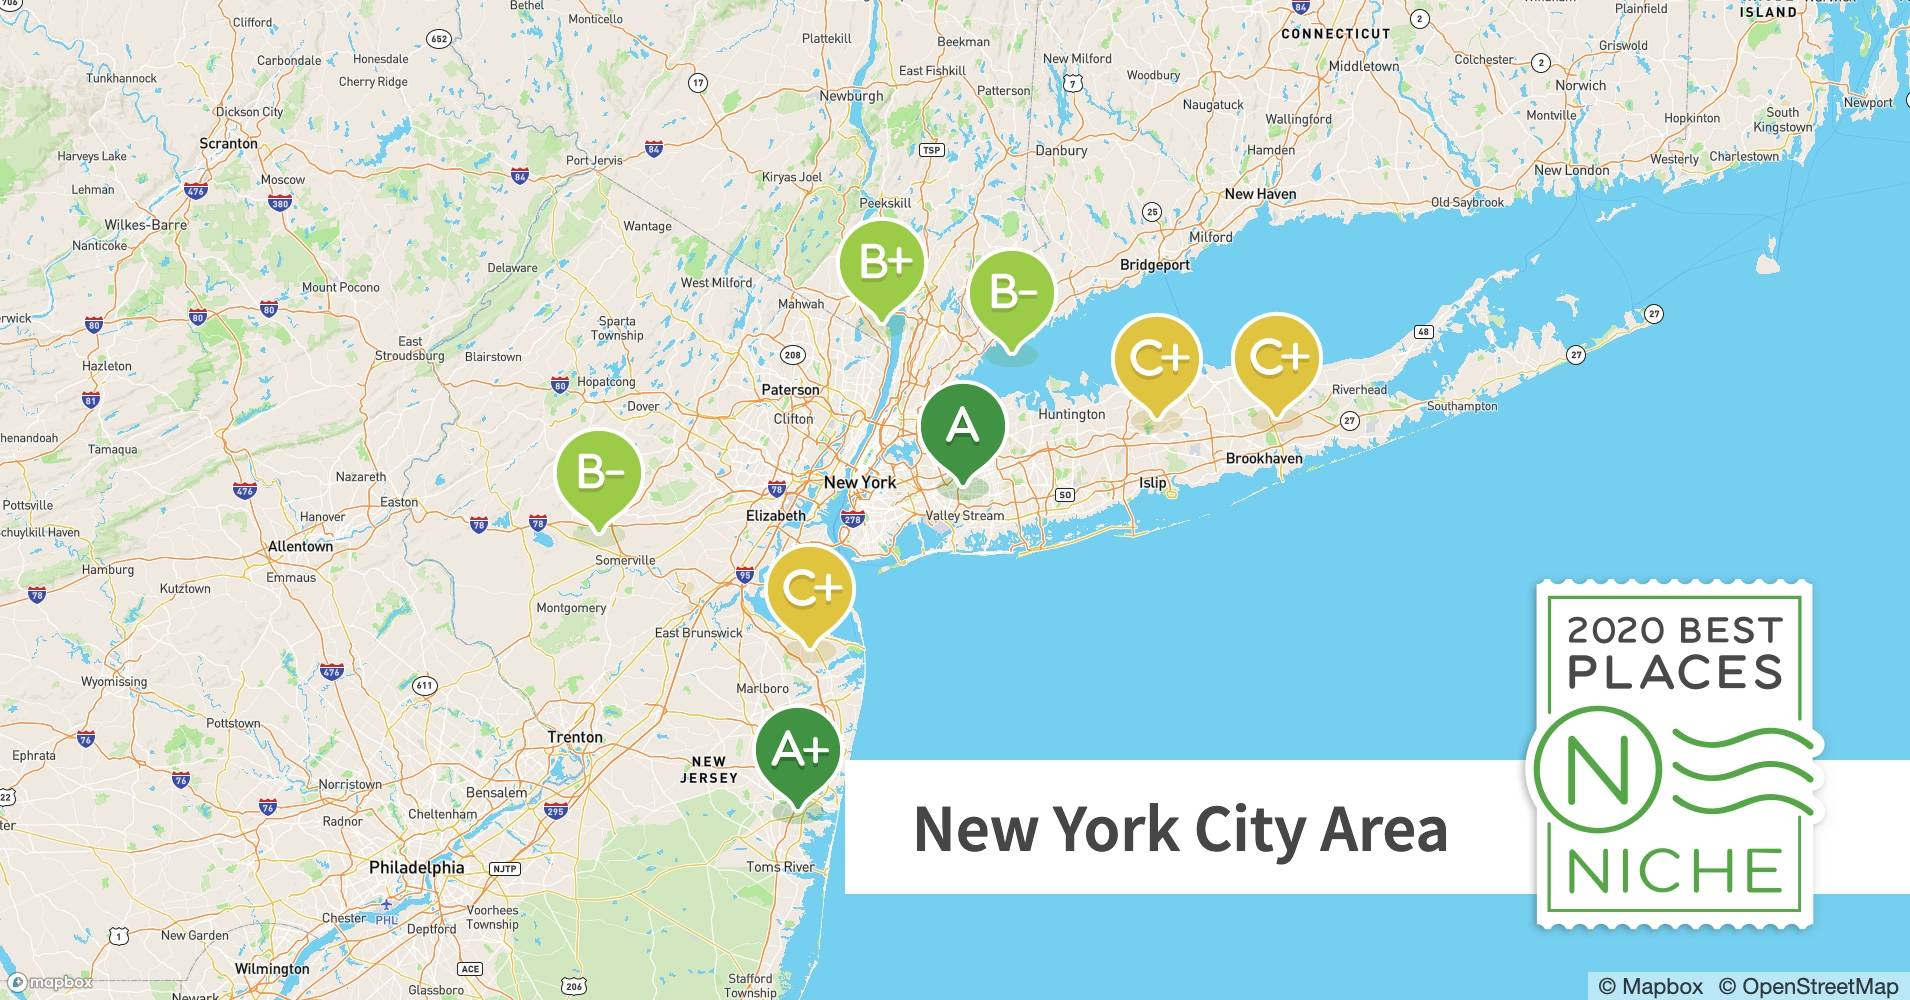 2020 Best Neighborhoods To Live In New York City Area Niche The new york metropolitan region is thriving, but its neighborhoods are experiencing many different forms of displacement. live in new york city area